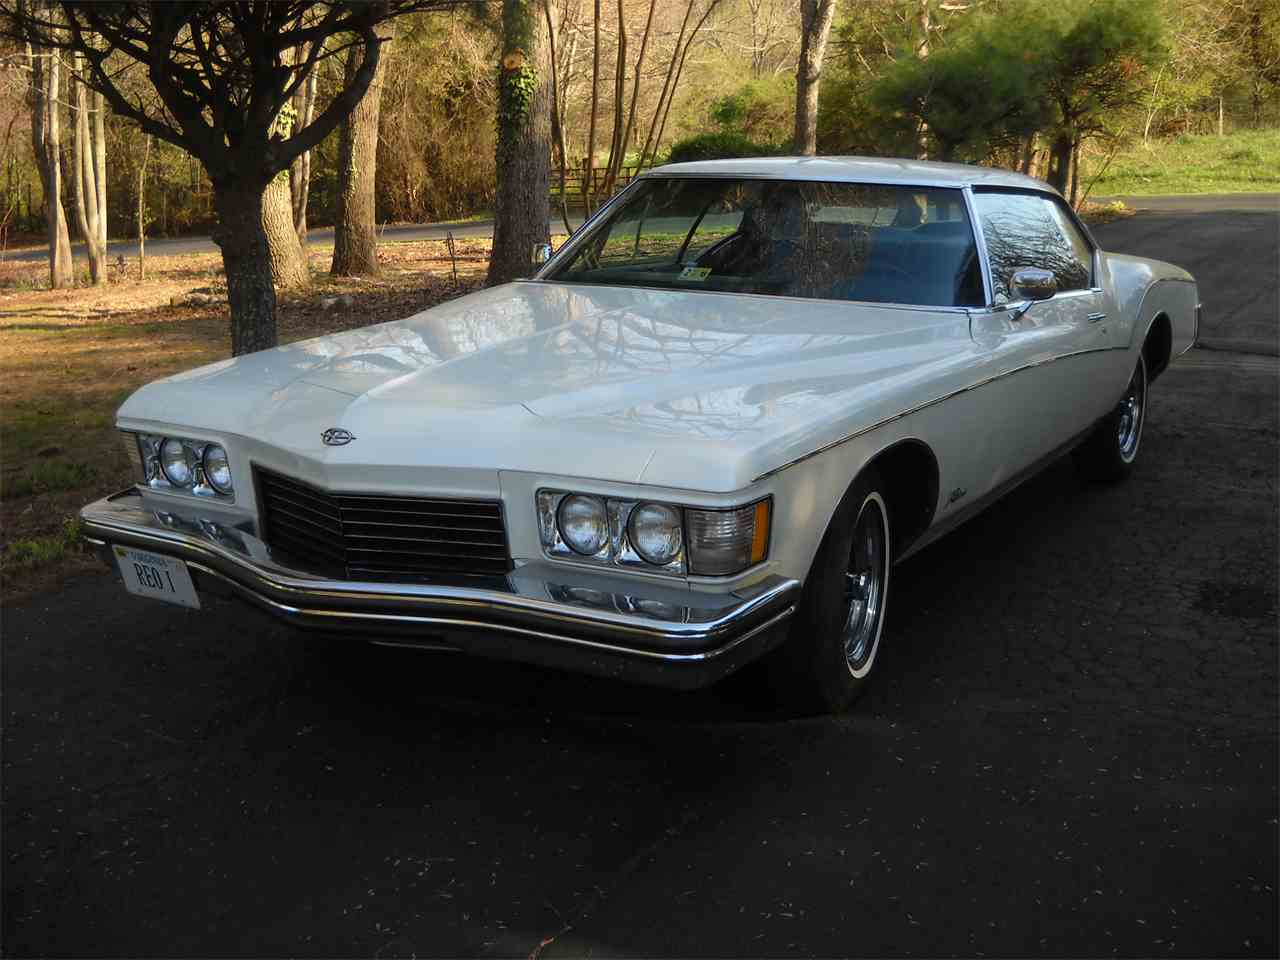 Custom 1973 Buick Riviera Is Rated At Nearly 1,000 ... |1973 Buick Riviera